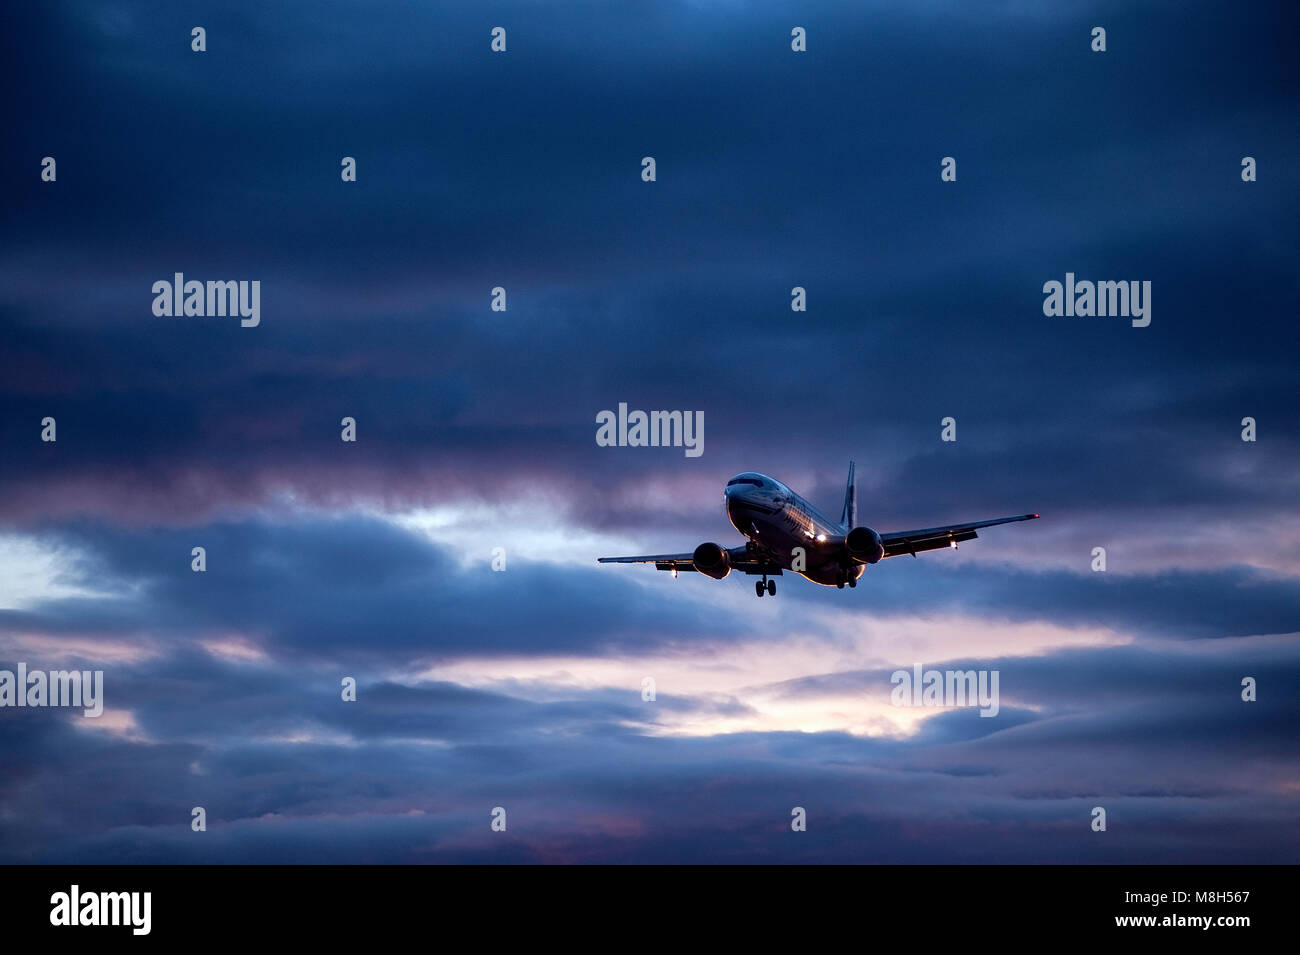 Alaska Airlines jet airlpane in flight, Alaska, USA. - Stock Image